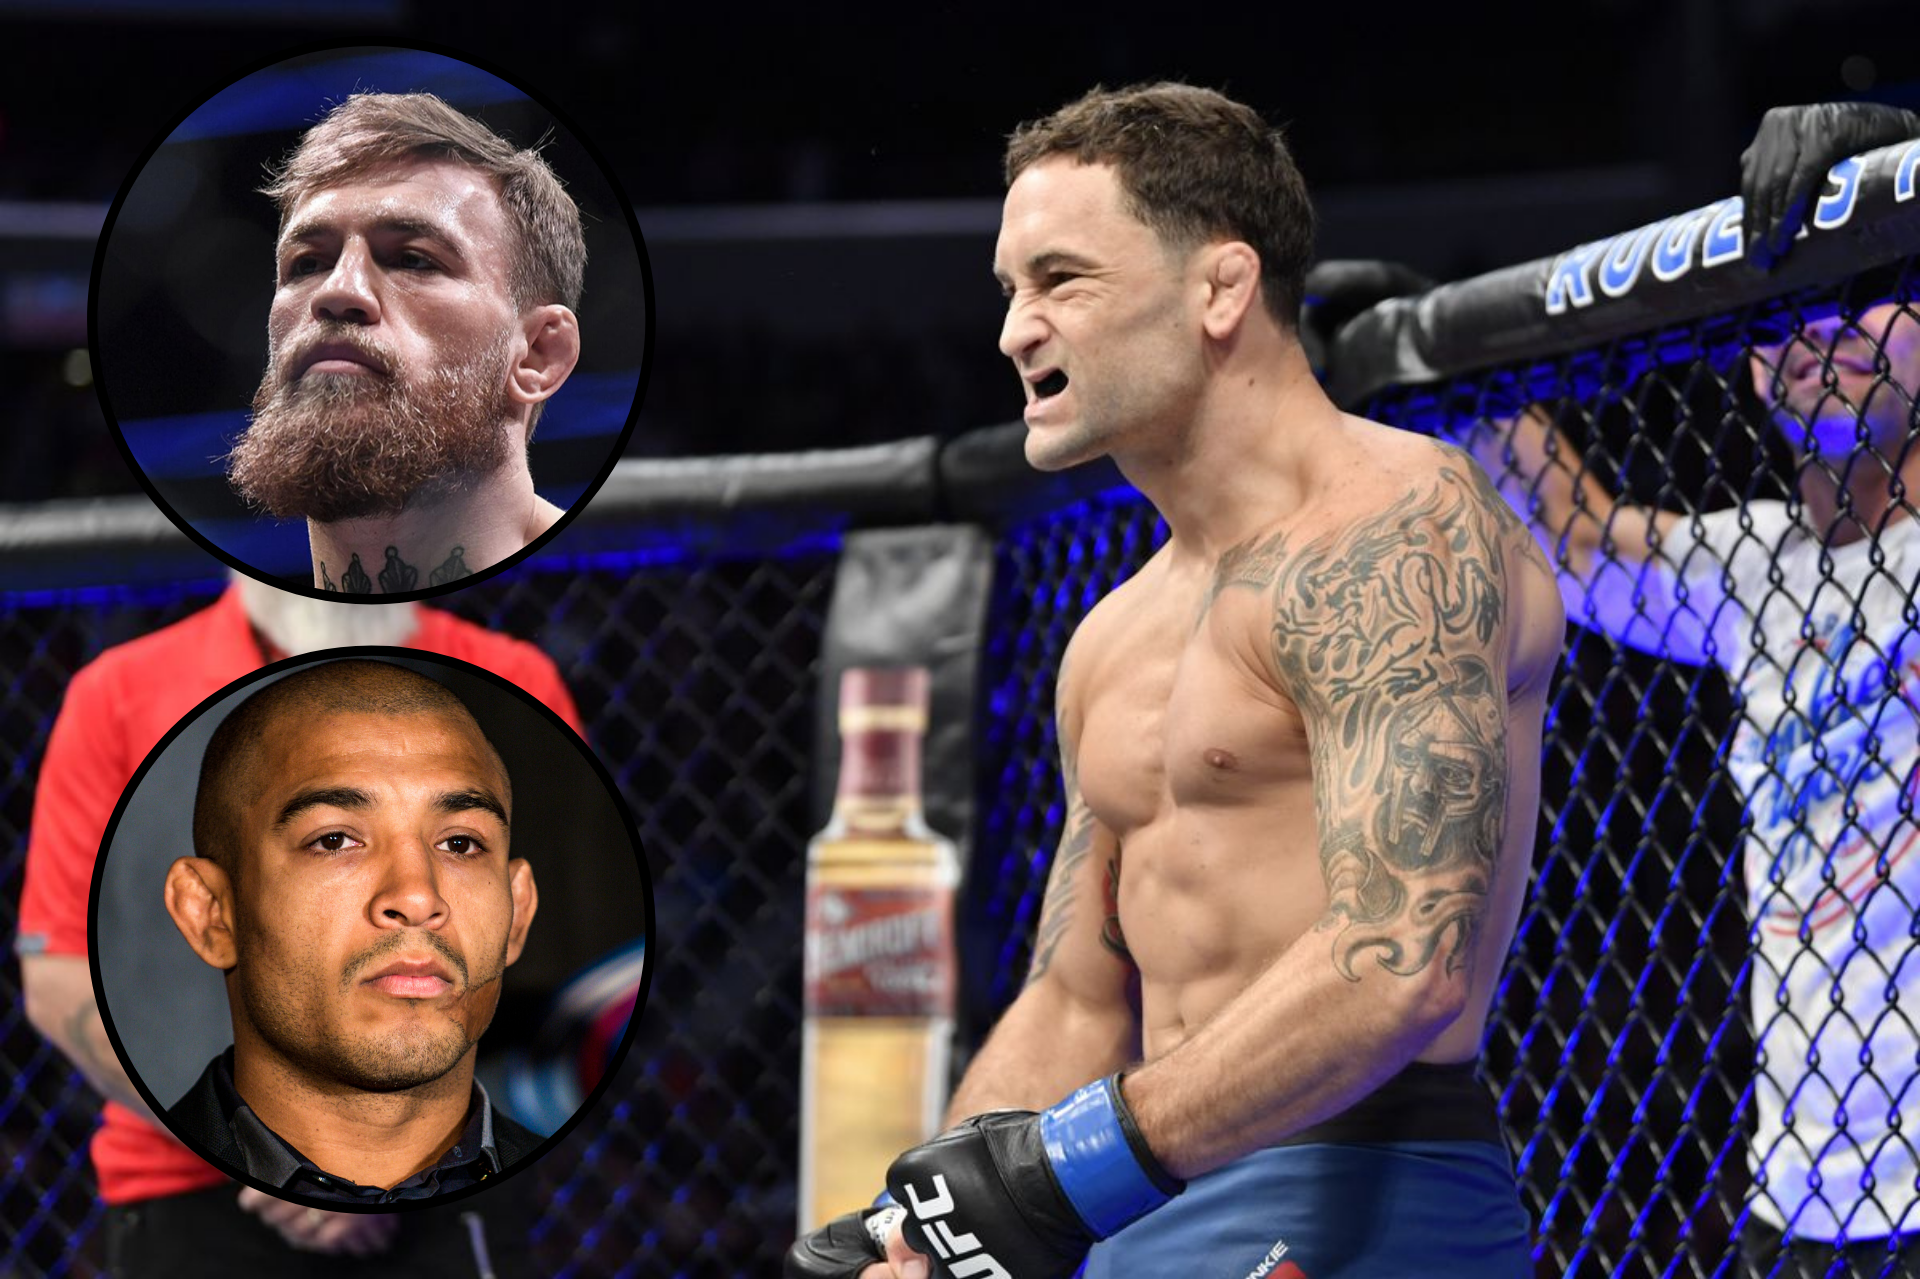 UFC News: Frankie Edgar reveals that he thought Jose Aldo would beat Conor McGregor - Frankie